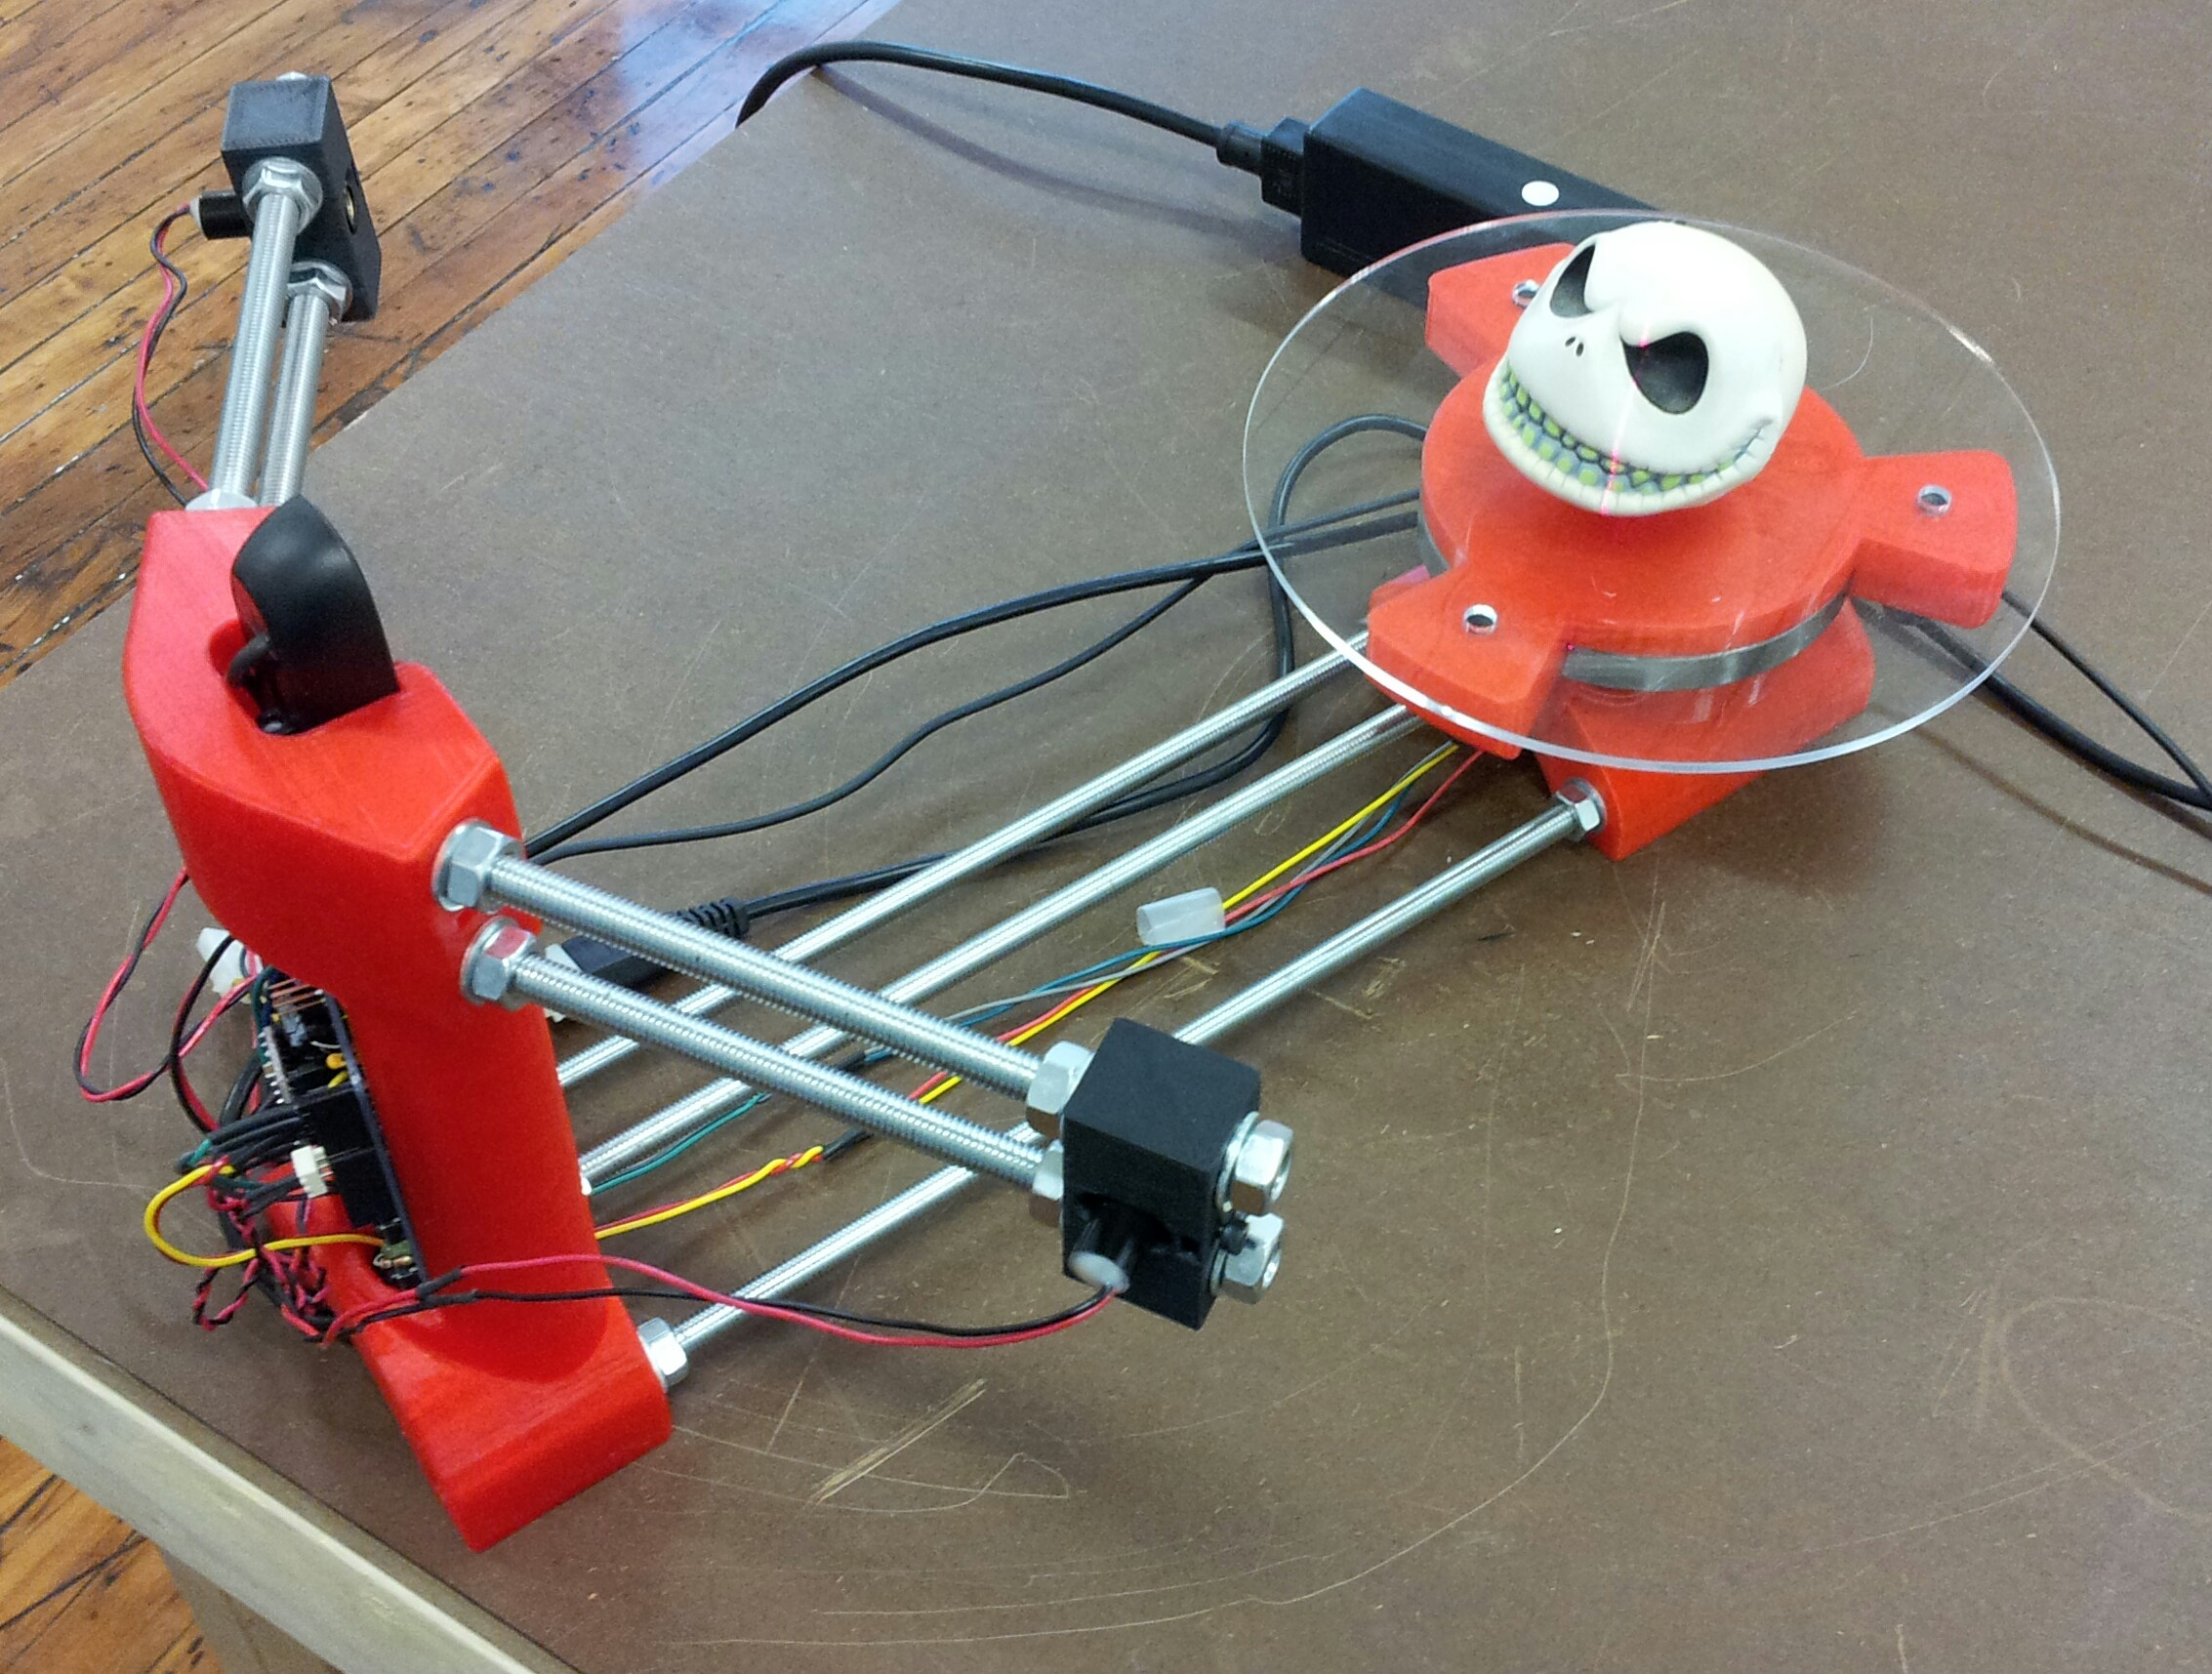 3D Scanner – Ocean State Maker Mill